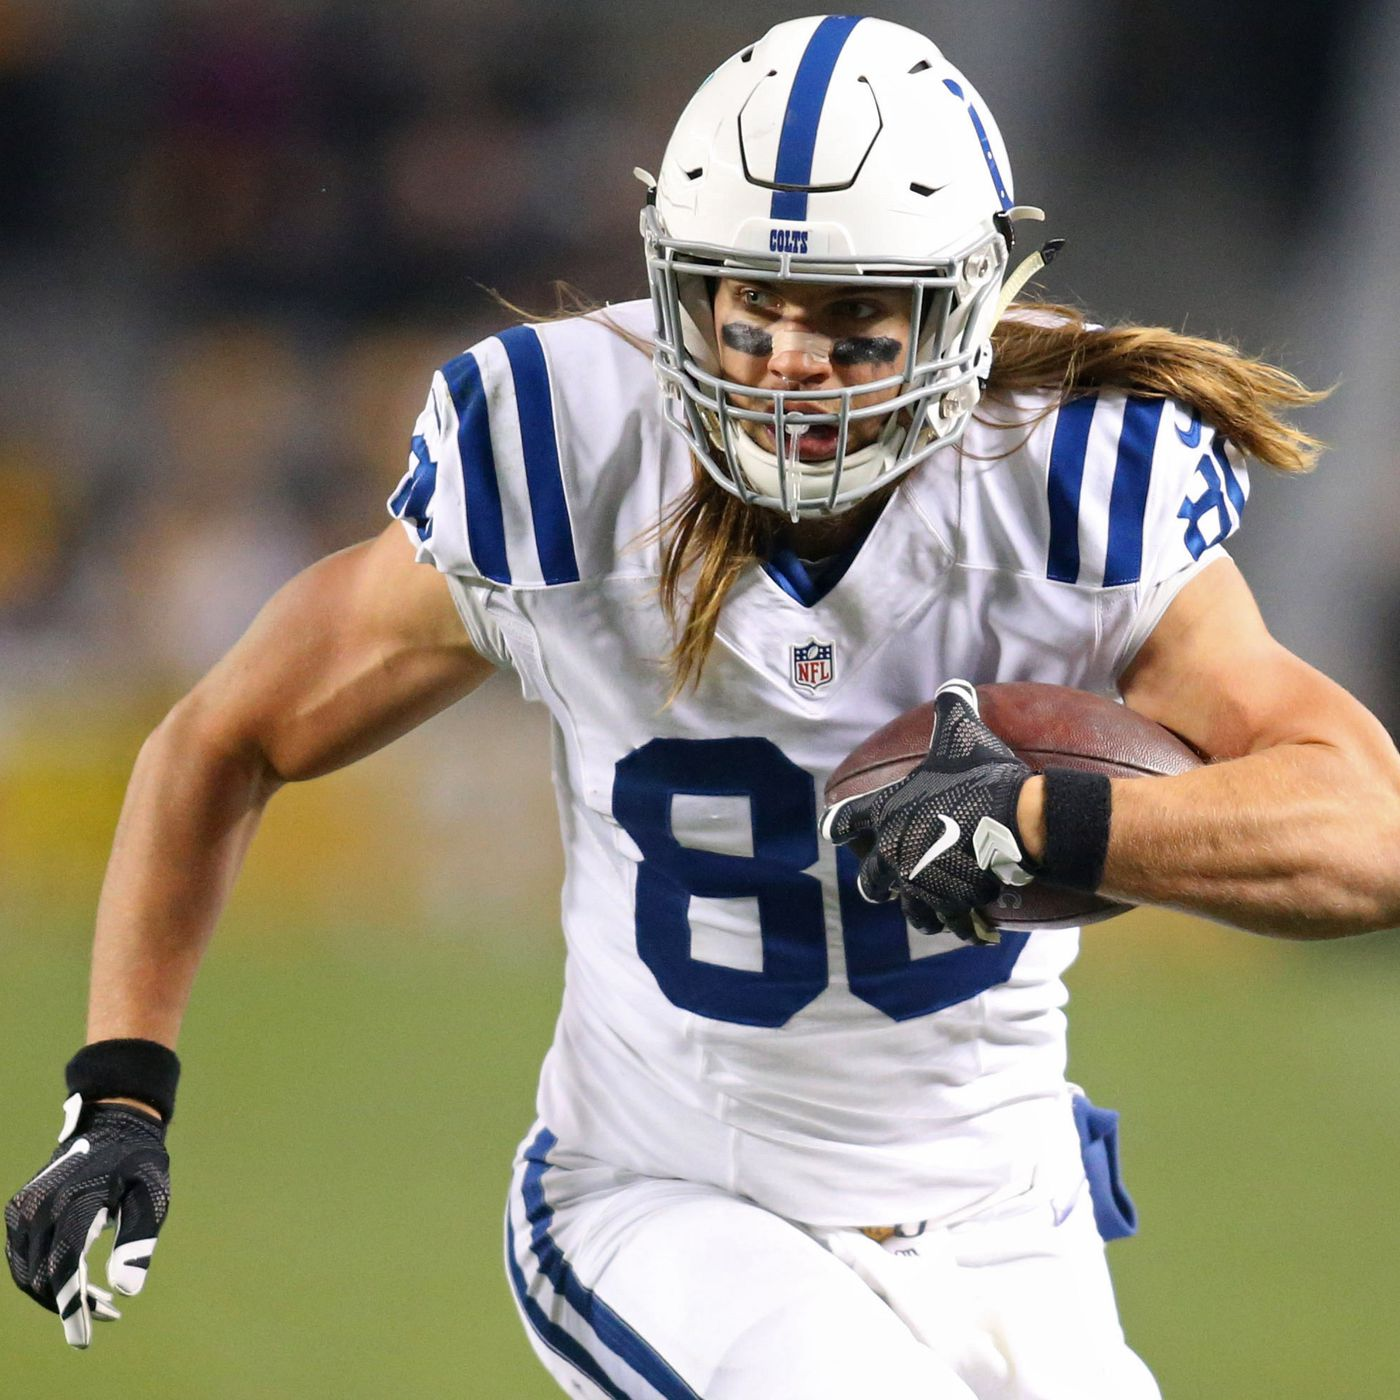 Coby Fleener signs 5-year deal with the Saints - SBNation.com